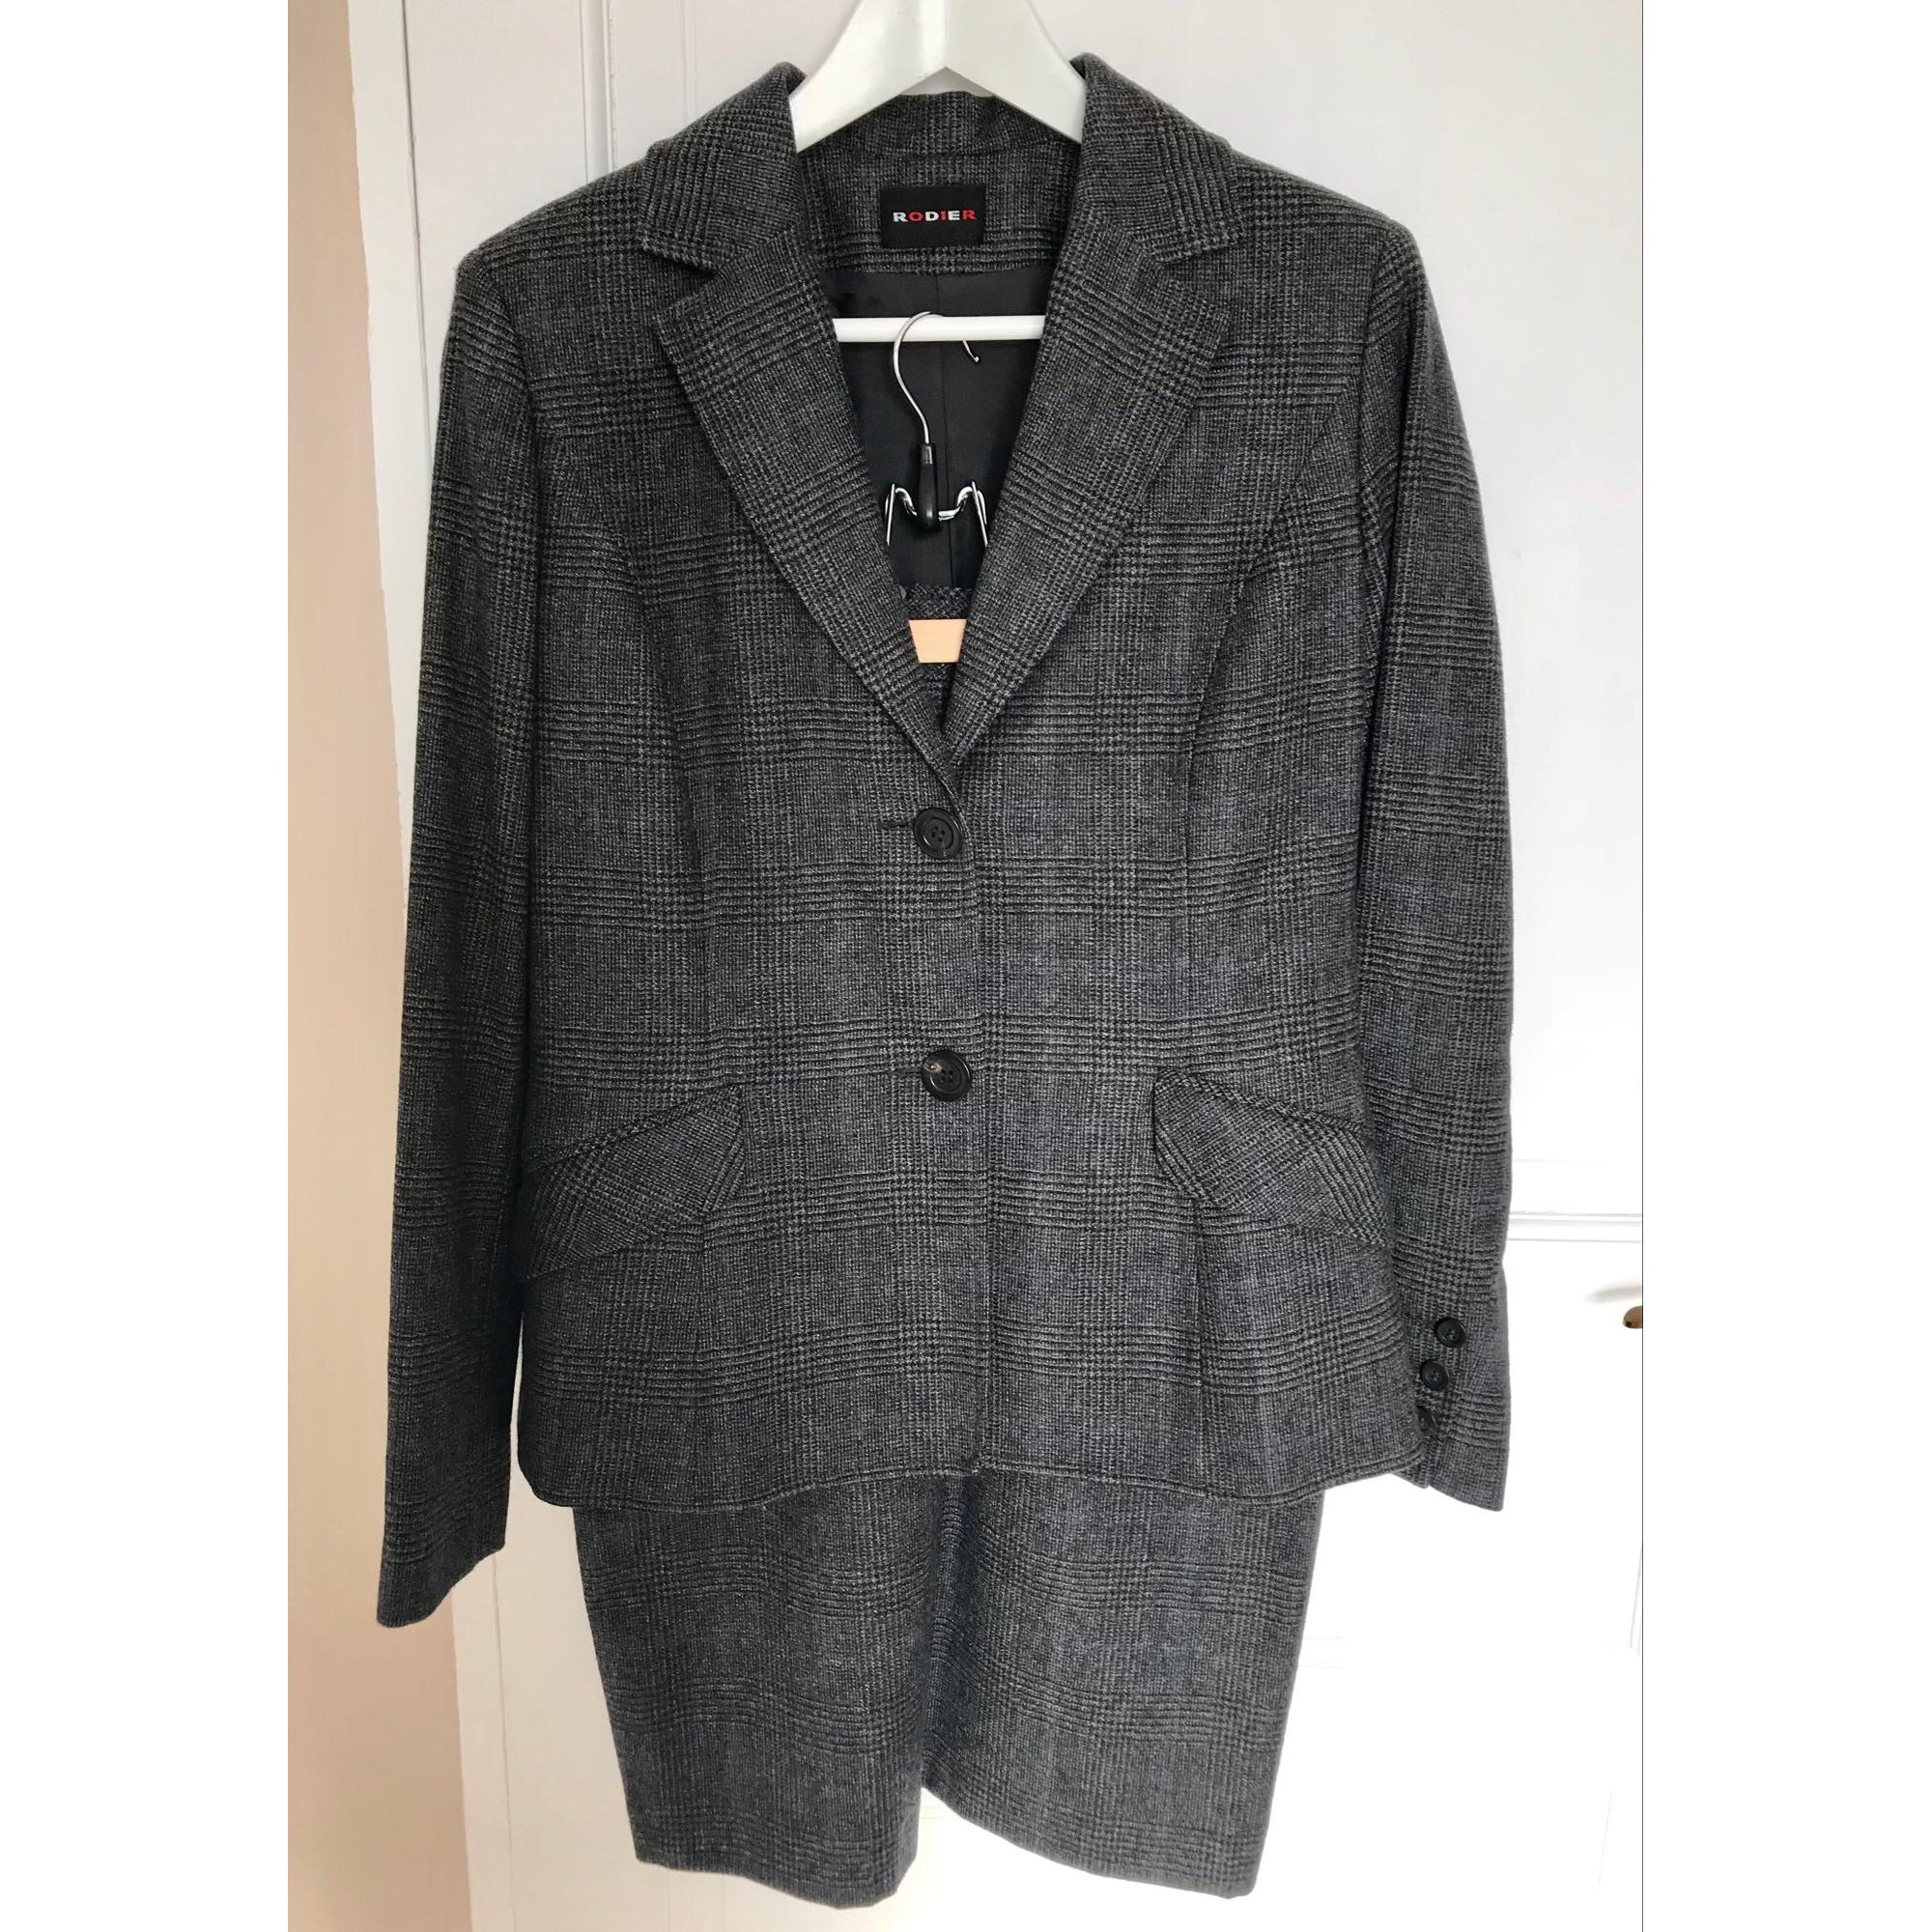 Tailleur jupe RODIER Gris, anthracite